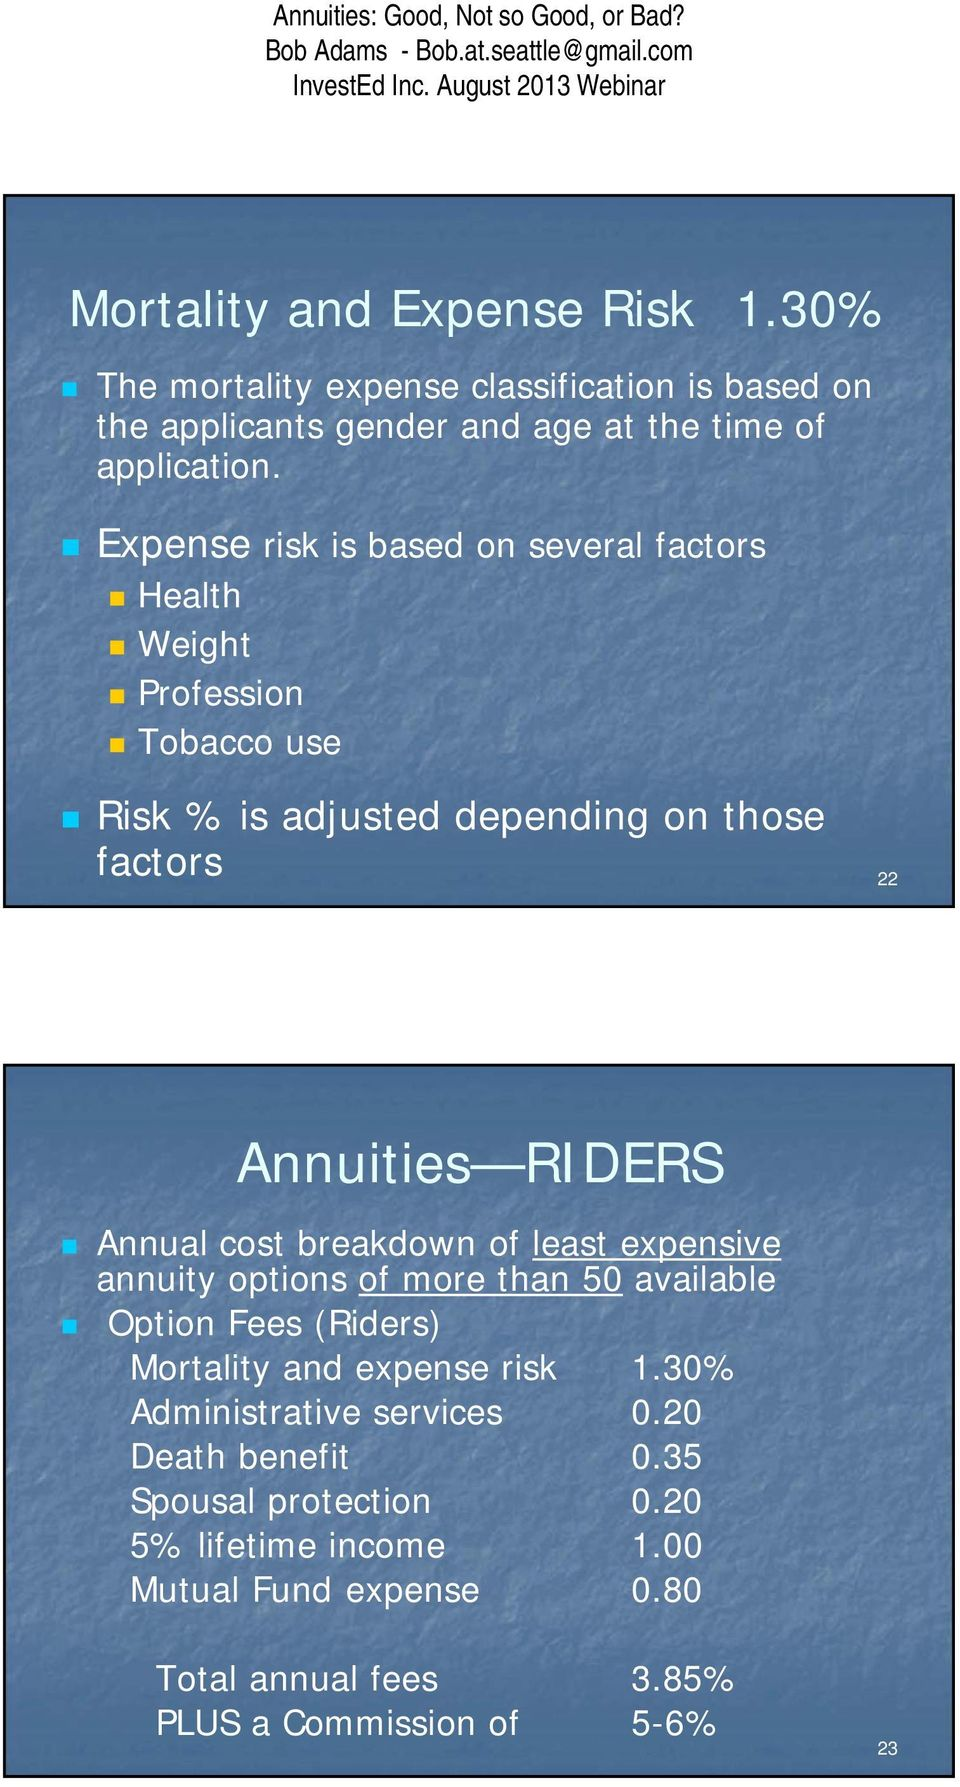 Annual cost breakdown of least expensive annuity options of more than 50 available Option Fees (Riders) Mortality and expense risk 1.